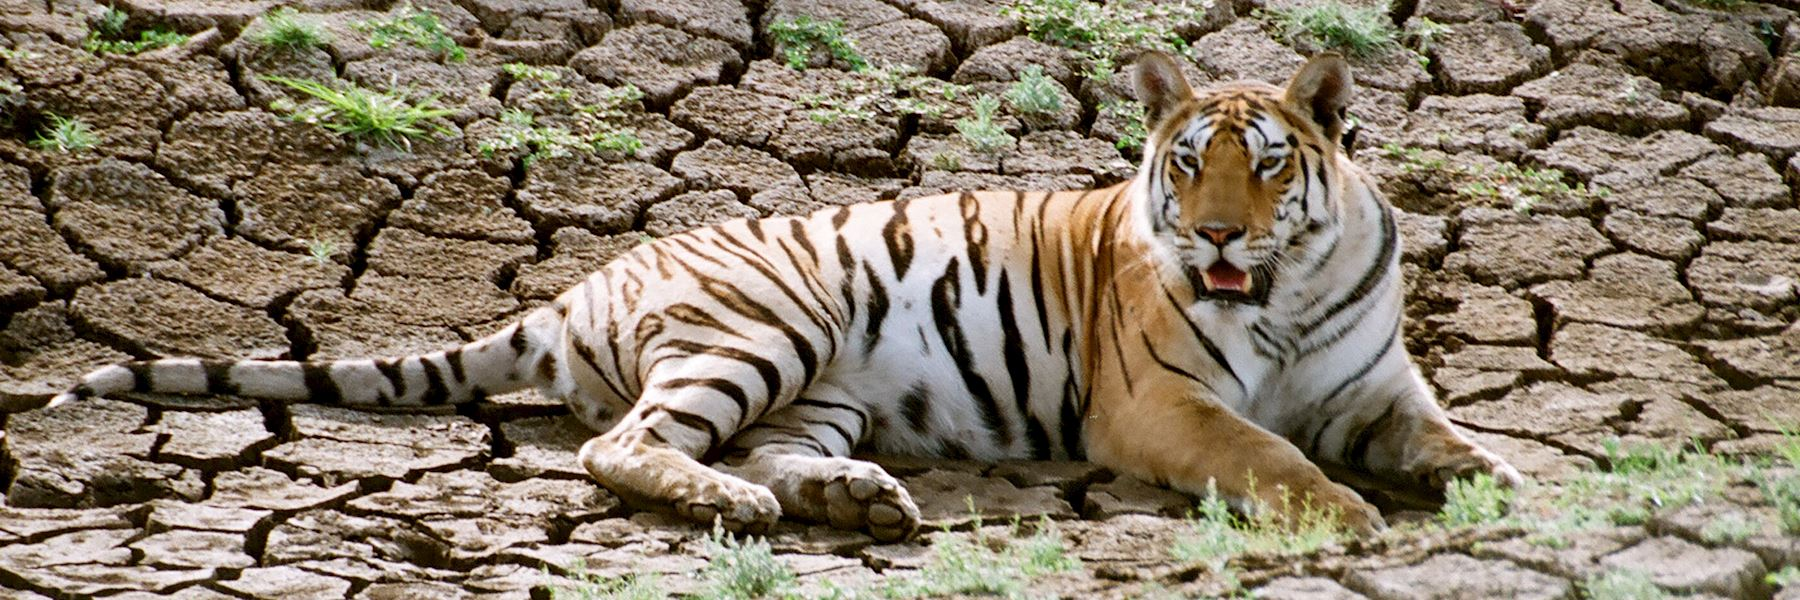 Visit Pench Tiger Reserve, India